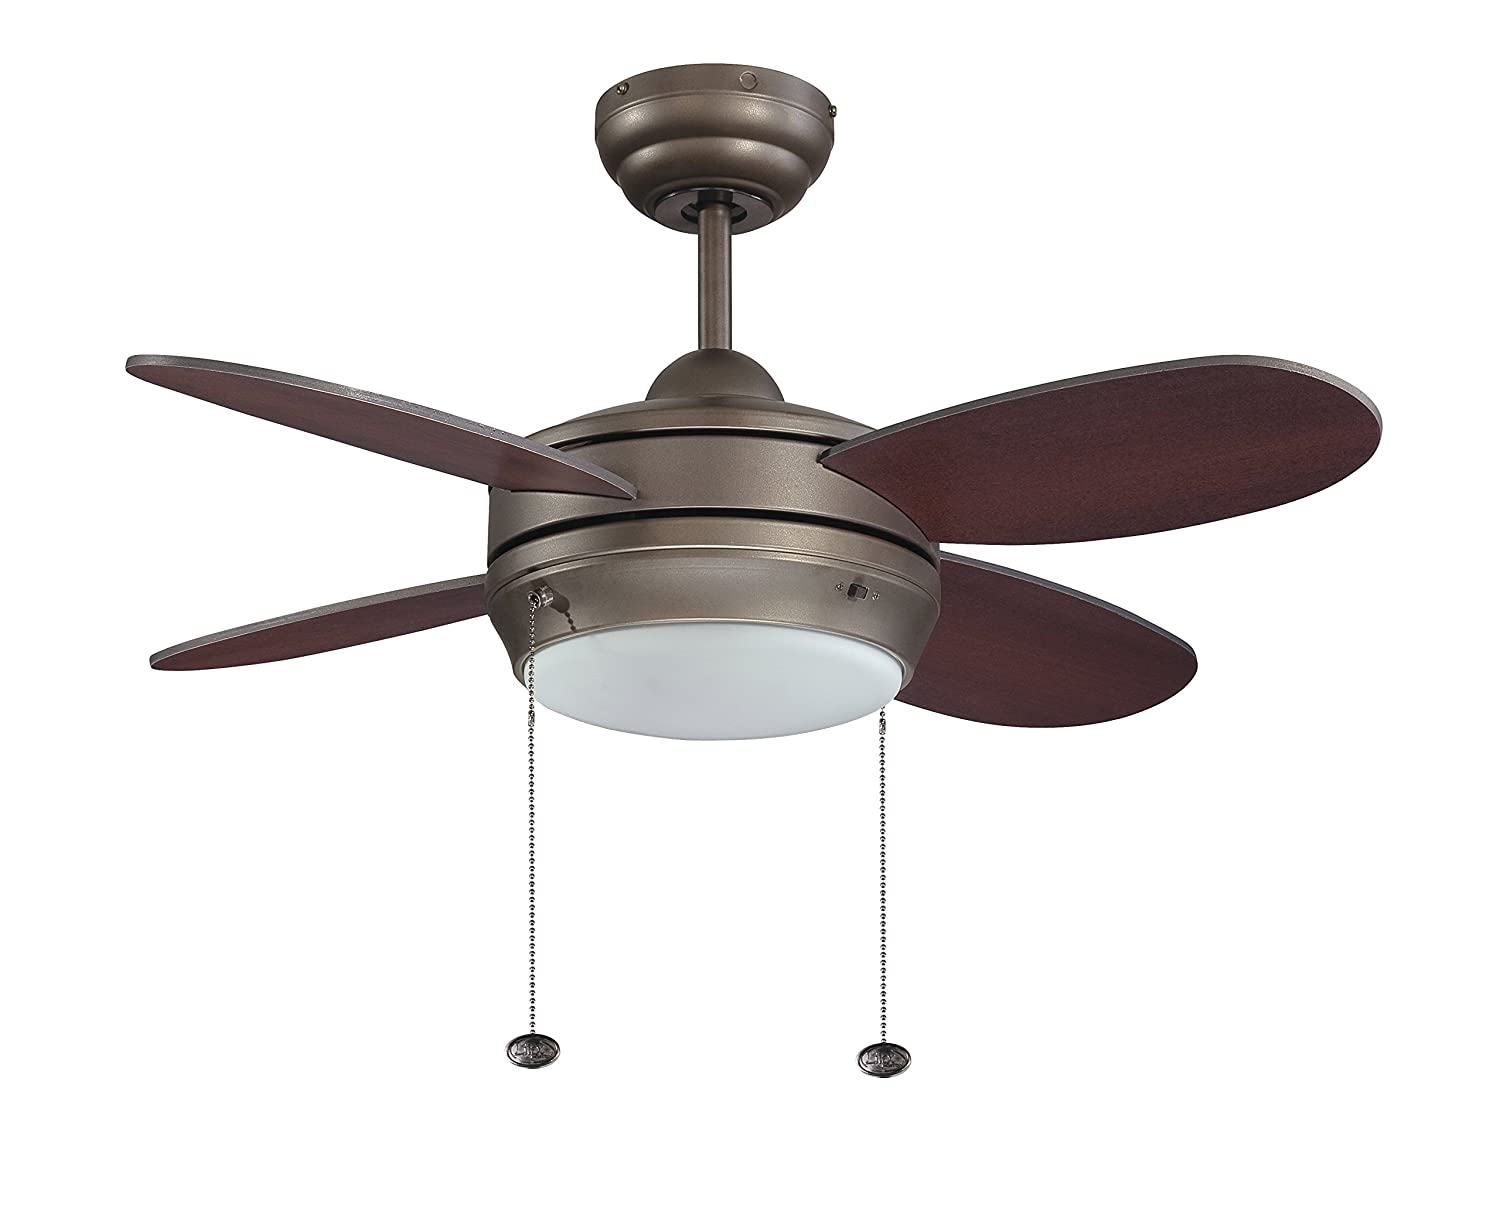 Litex e mlv36esp4lk1 maksim collection 36 inch ceiling fan with four litex e mlv36esp4lk1 maksim collection 36 inch ceiling fan with four dark walnut blades and single light kit with opal frosted glass amazon aloadofball Image collections